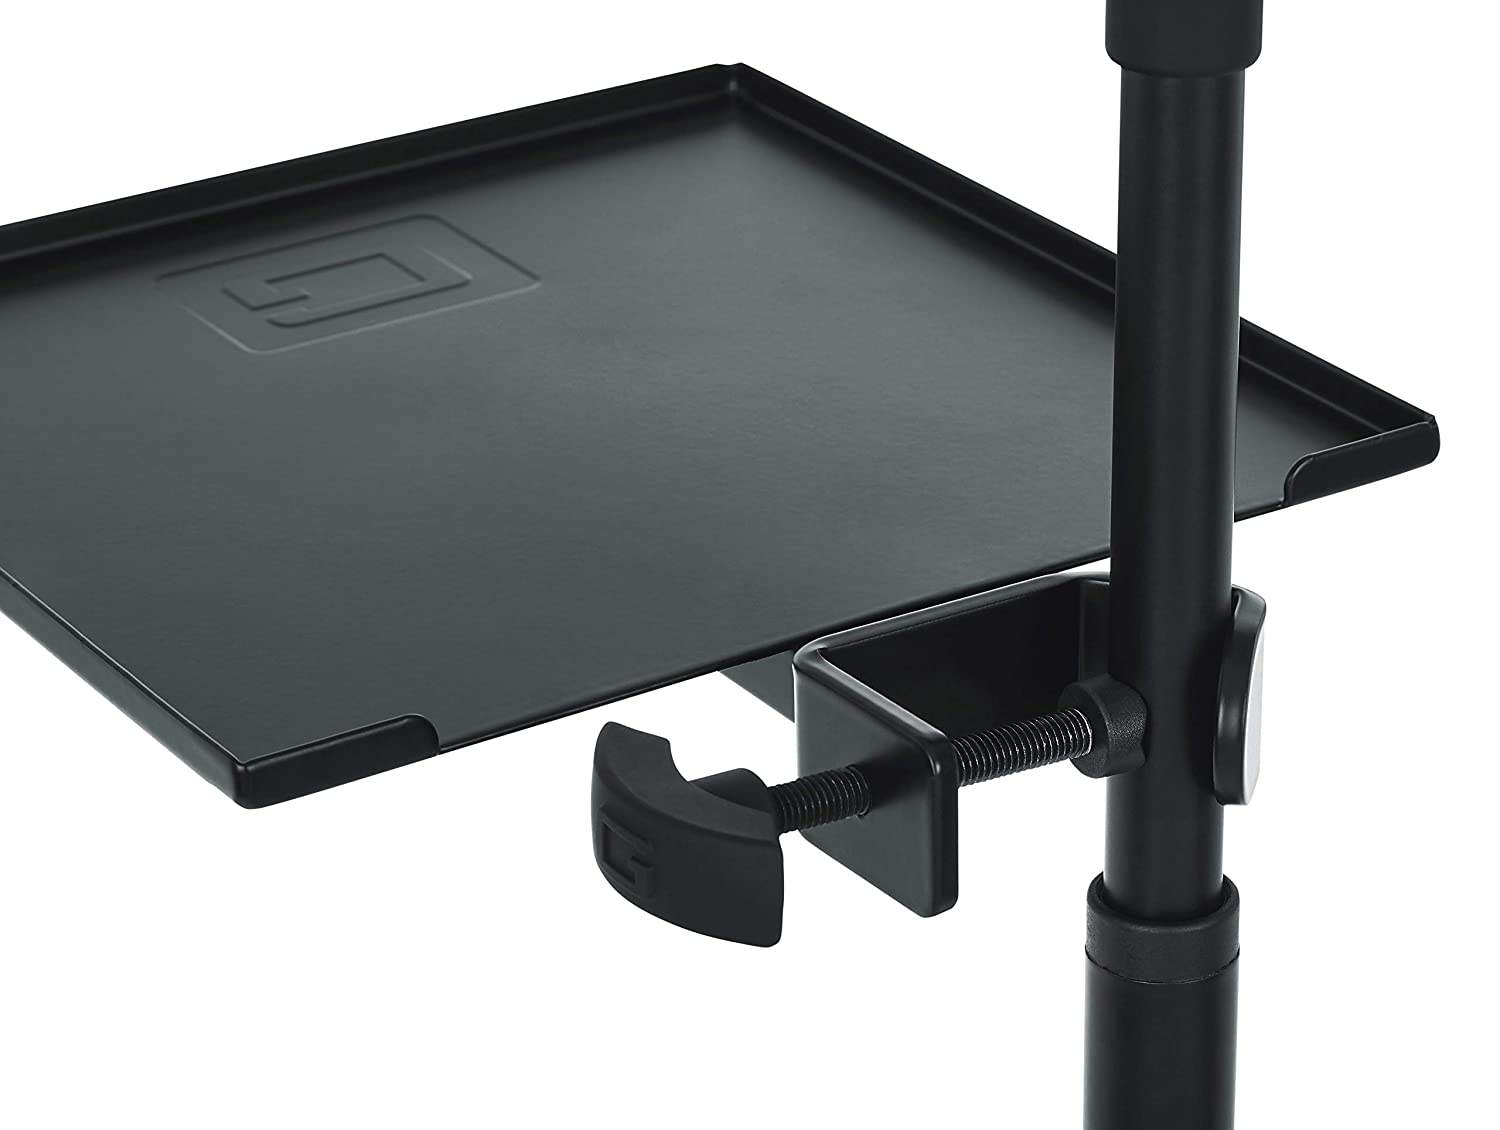 Gator Frameworks Microphone Stand Clamp-On Utility Shelf; 9 x 9 Surface Area with 10 pound Weight Capacity GFW-SHELF0909